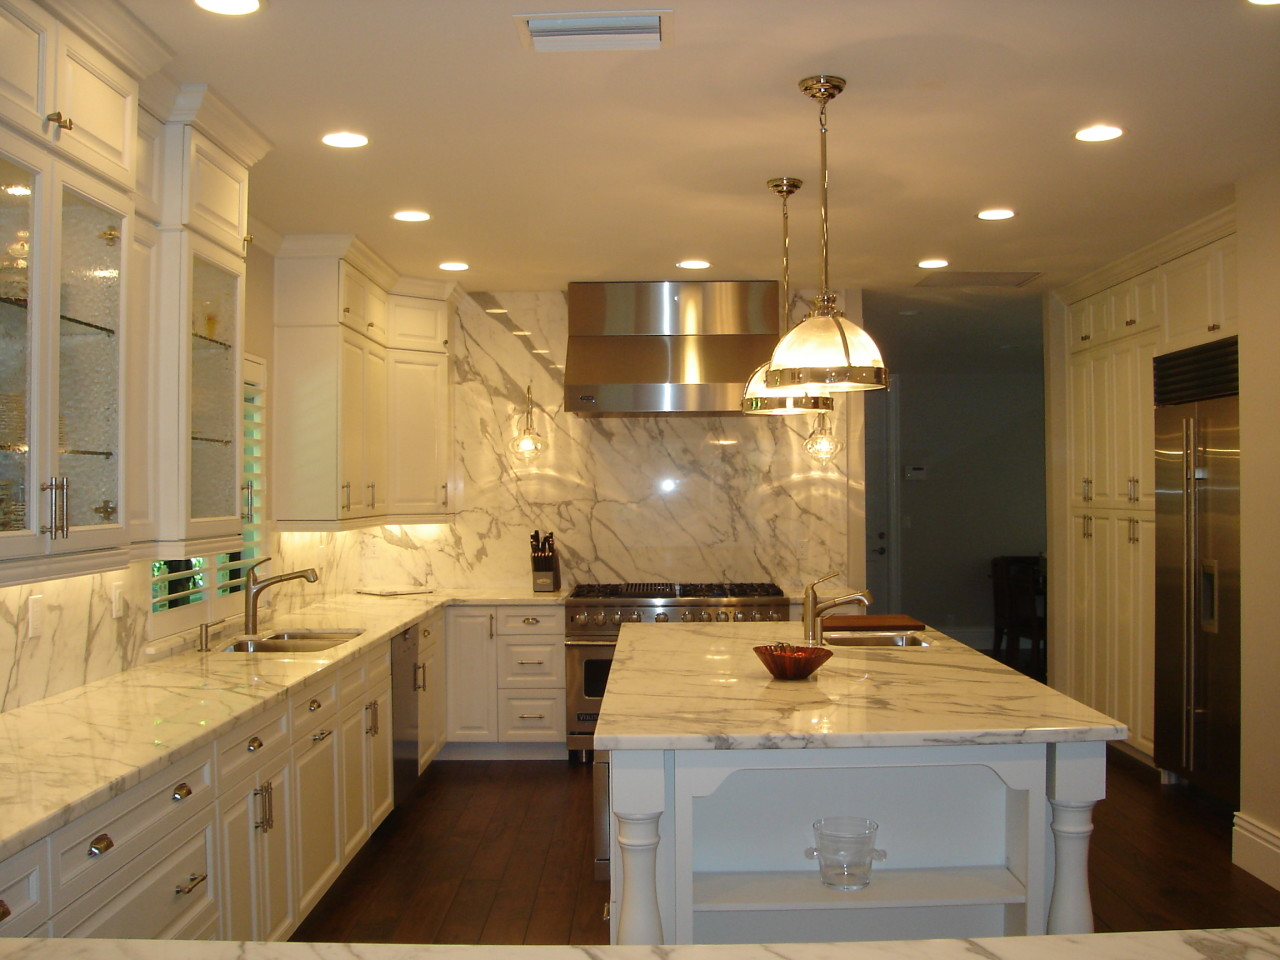 Transitional Kitchen Design Copy Of Scharr 004 Bath Creations South Florida